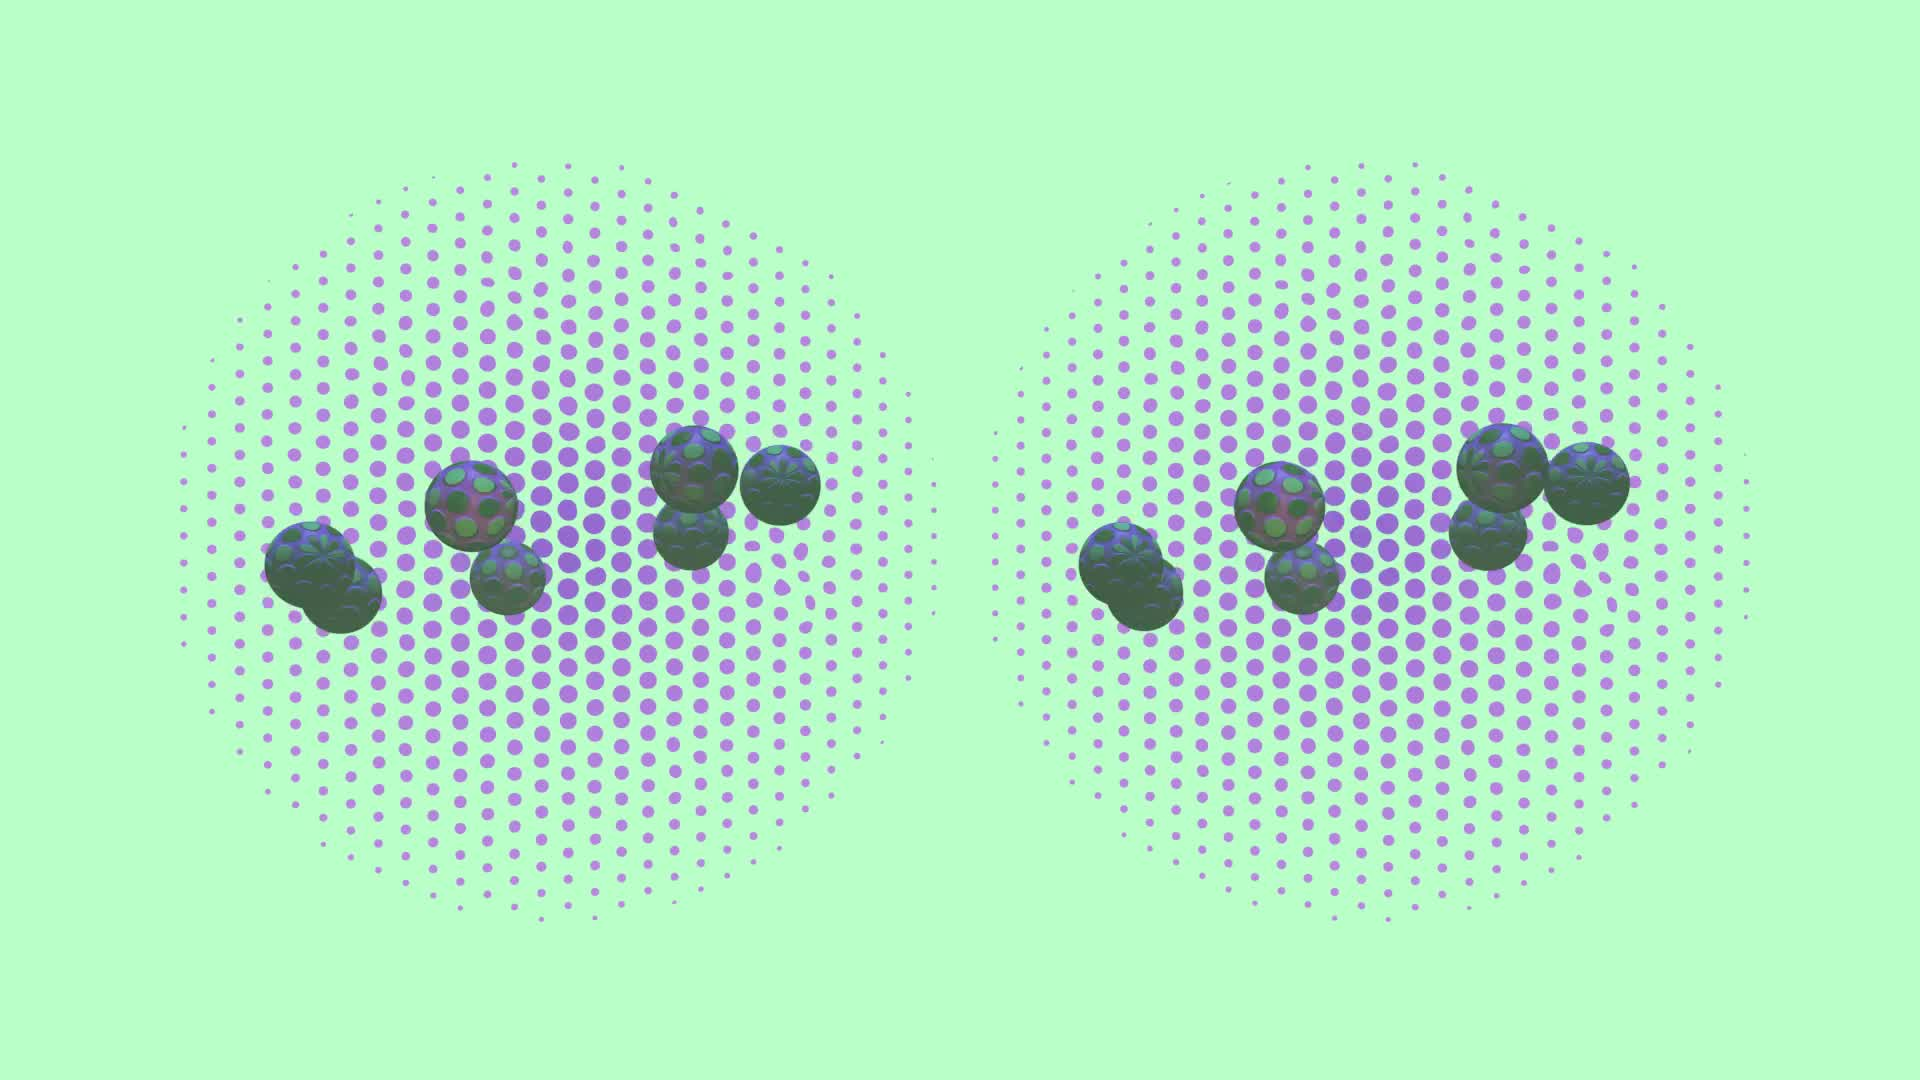 3d, amazing, blender, cinema4d, crosseye, crosseyed, crossview, illusion, loop, looping, optical illusion, rendered, stereoscopic, yt:quality=high, Stereoscopic 3d animation - crossview GIFs